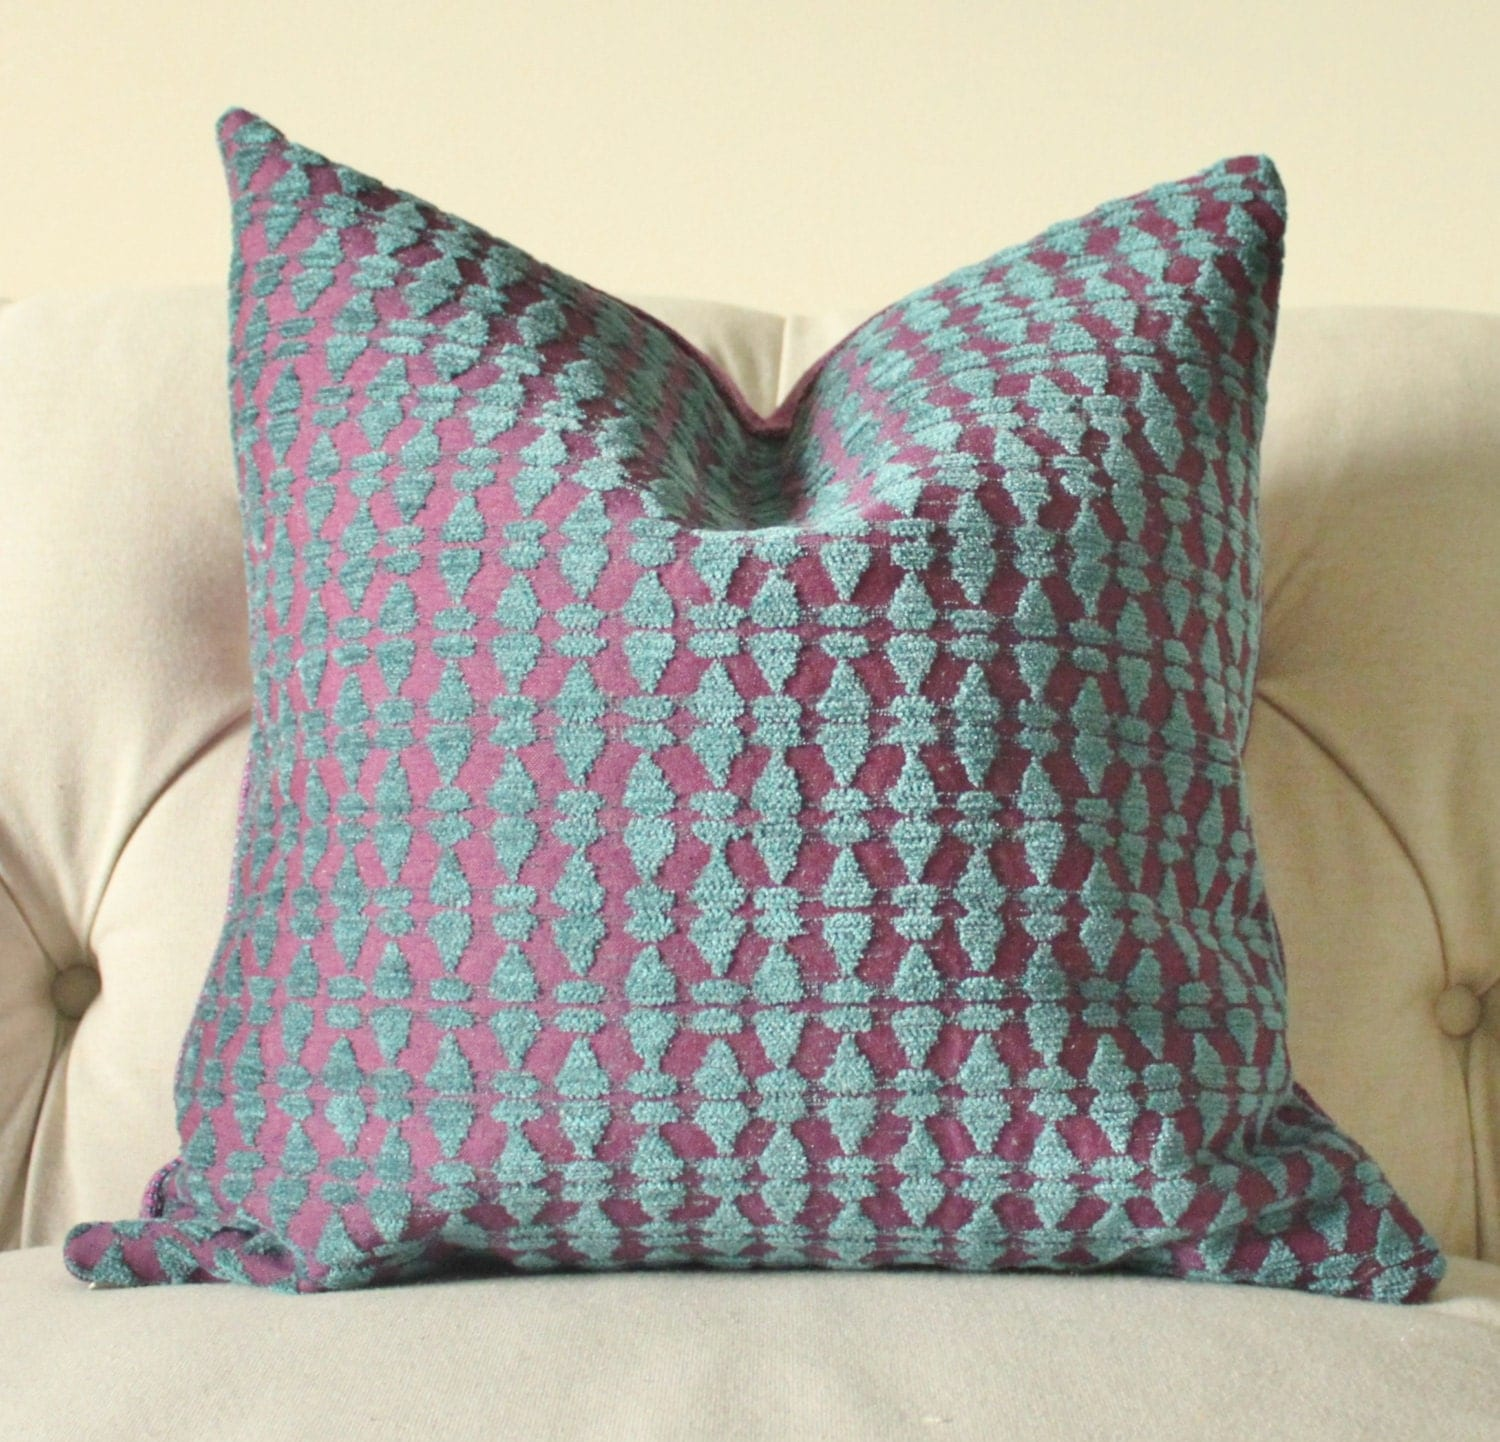 Turquoise And Purple Decorative Pillows : Unavailable Listing on Etsy